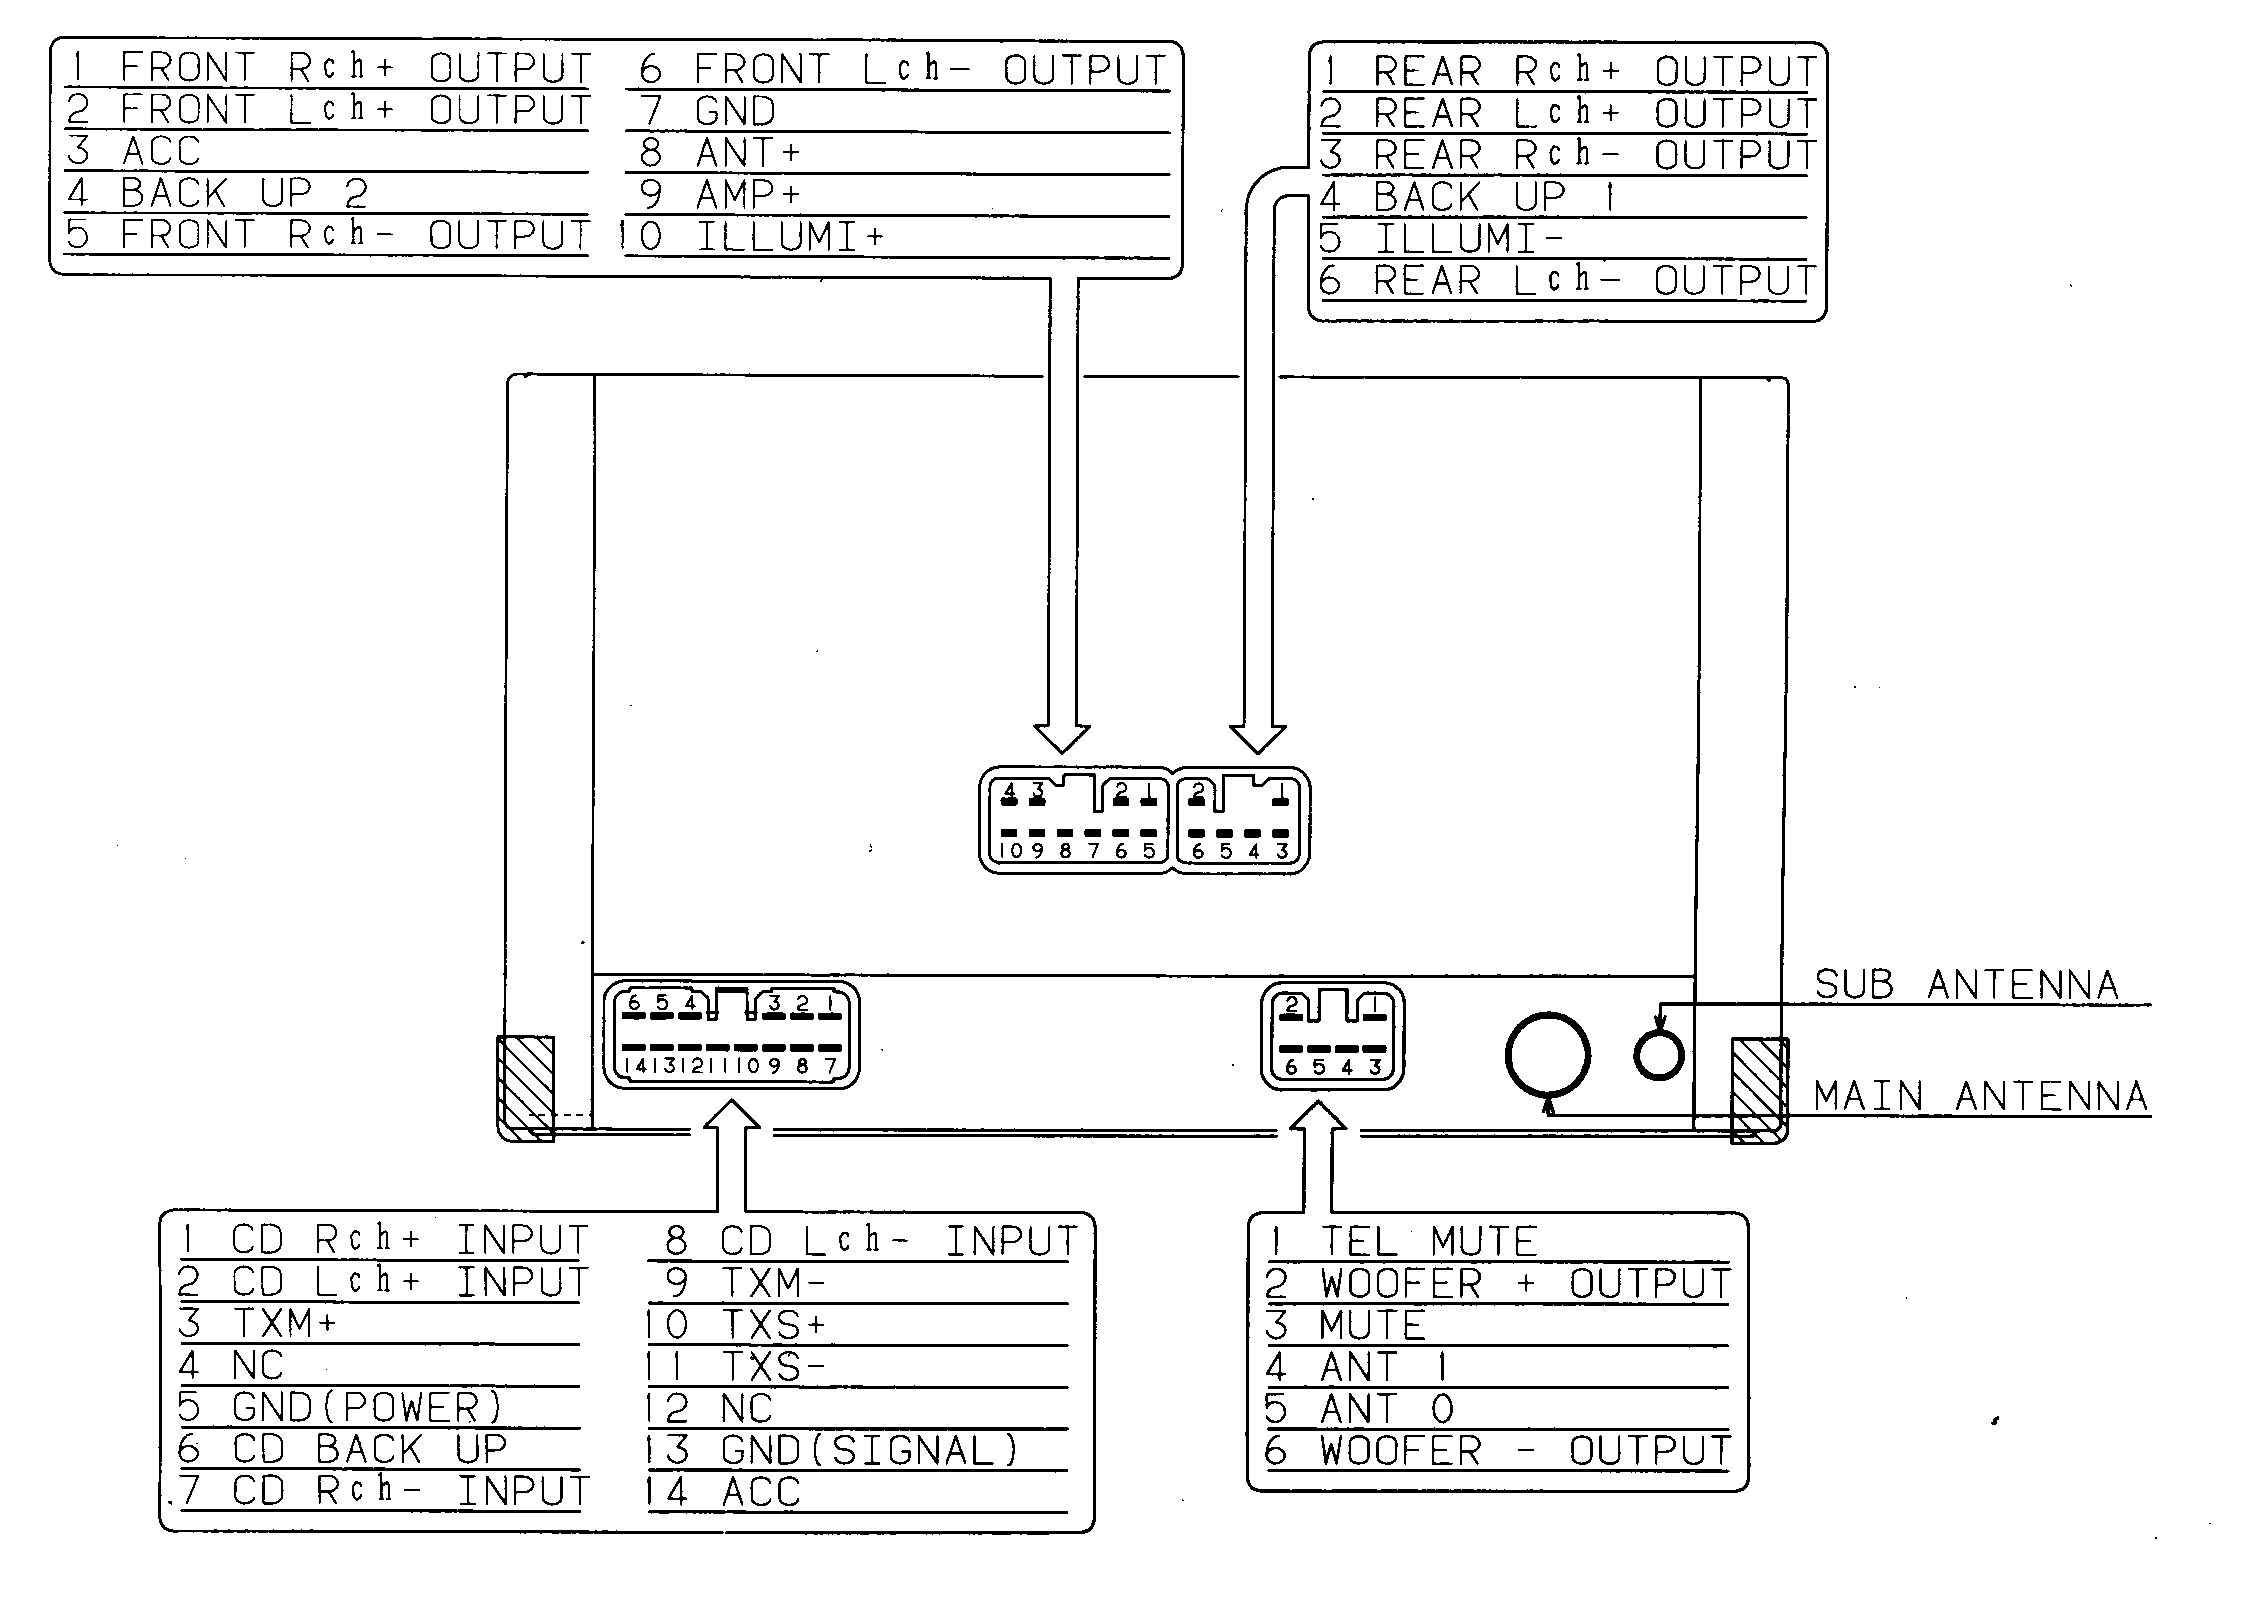 car audio wire diagram codes lexus factory car stereo repair diagram of car stereo wiring with  sc 1 st  MiFinder : stereo wiring connectors - yogabreezes.com